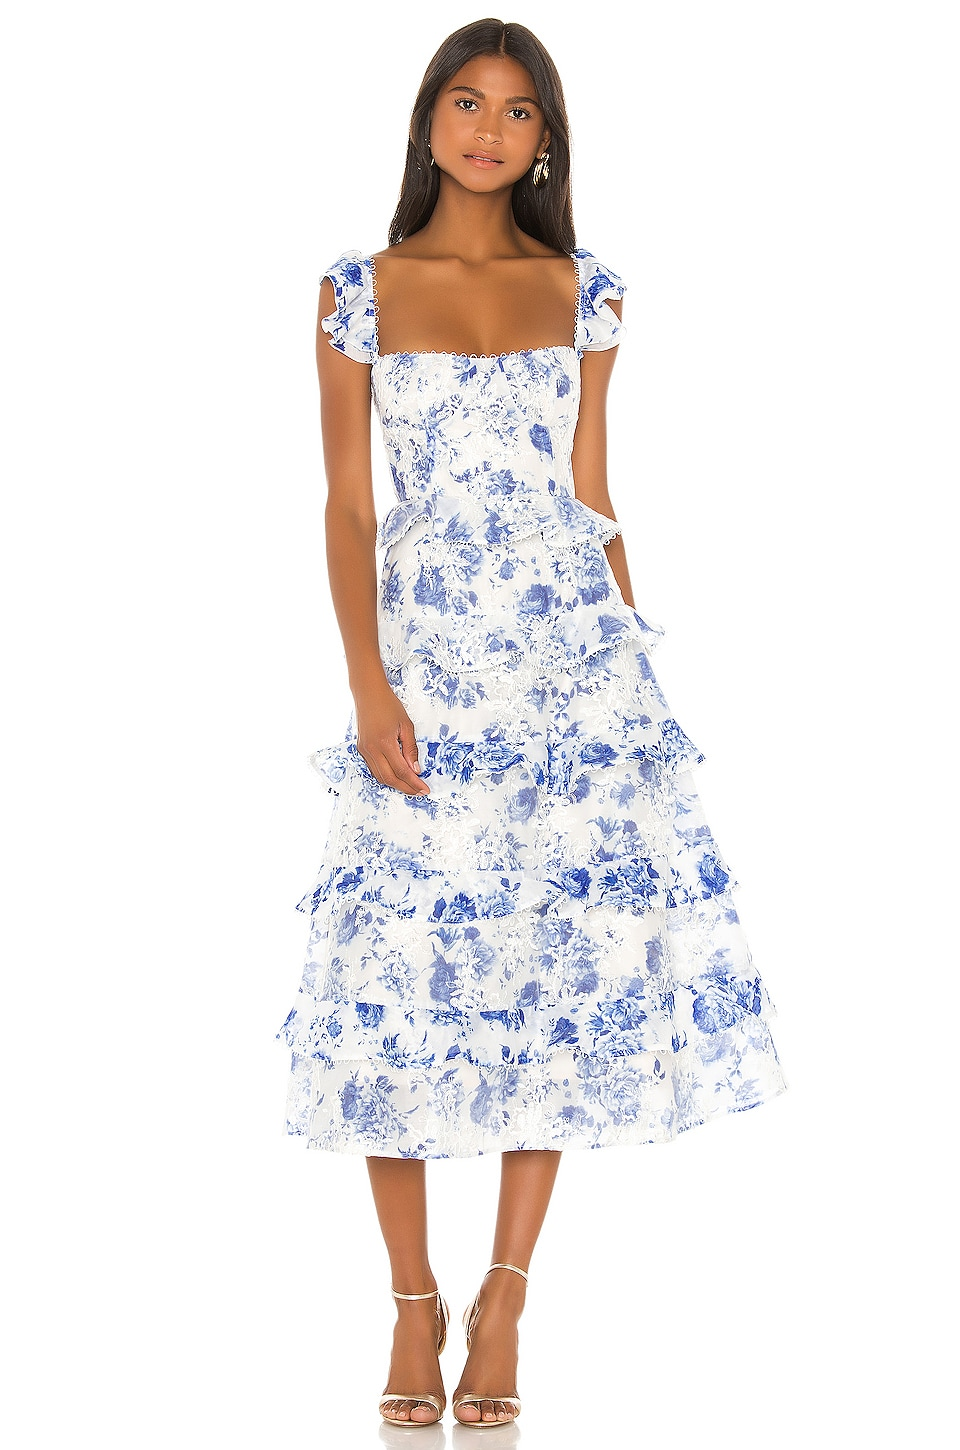 V. Chapman Maribelle Dress in French Blue Floral